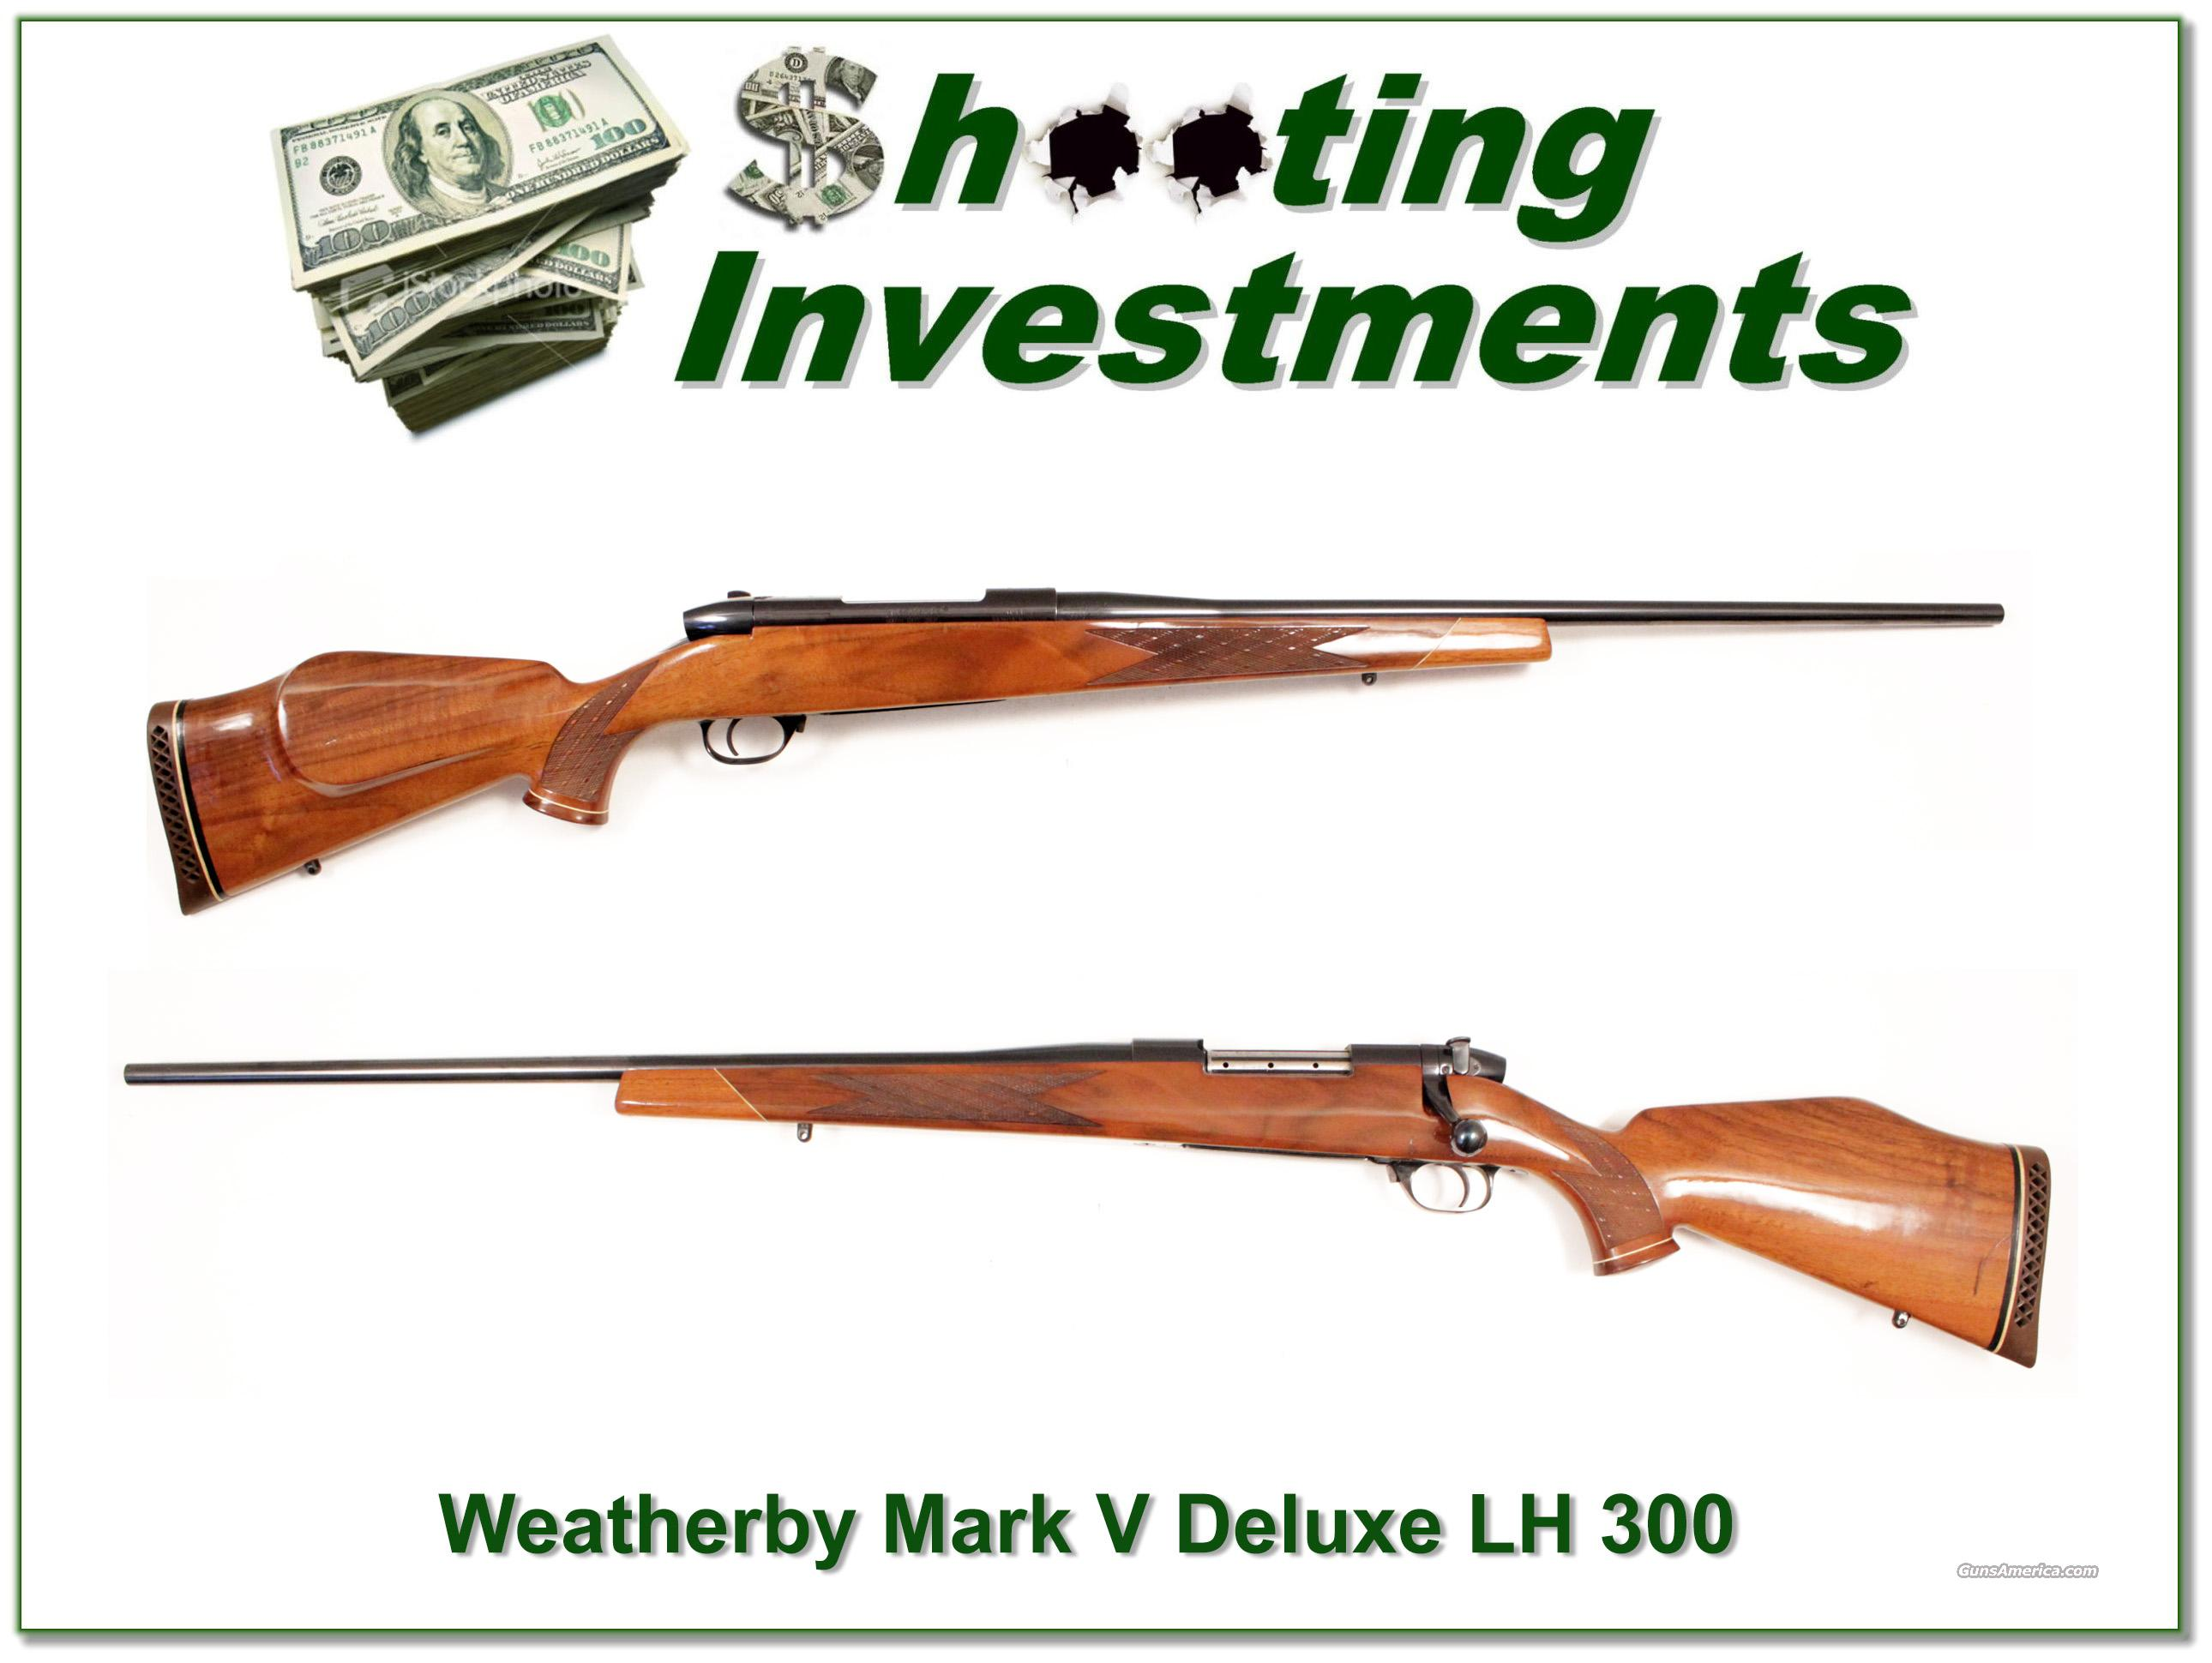 Weatherby Mark V Deluxe LH 300 Wthy Mag  Guns > Rifles > Weatherby Rifles > Sporting